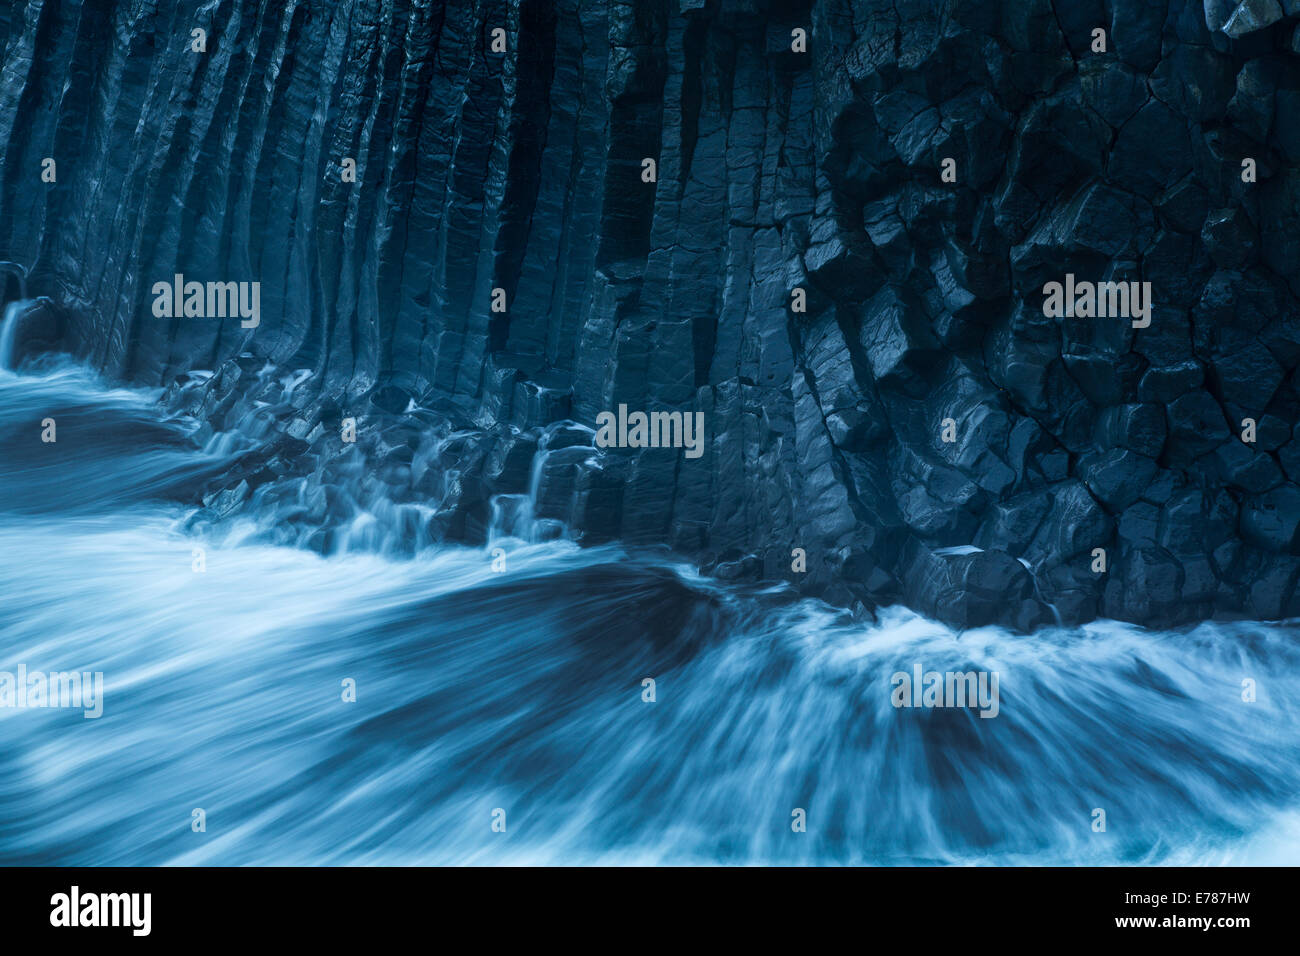 the cliffs and basalt rocks streaked with the guano of kittiwakes, nr Arnastapi, Snaefellsnes Peninsula, western - Stock Image